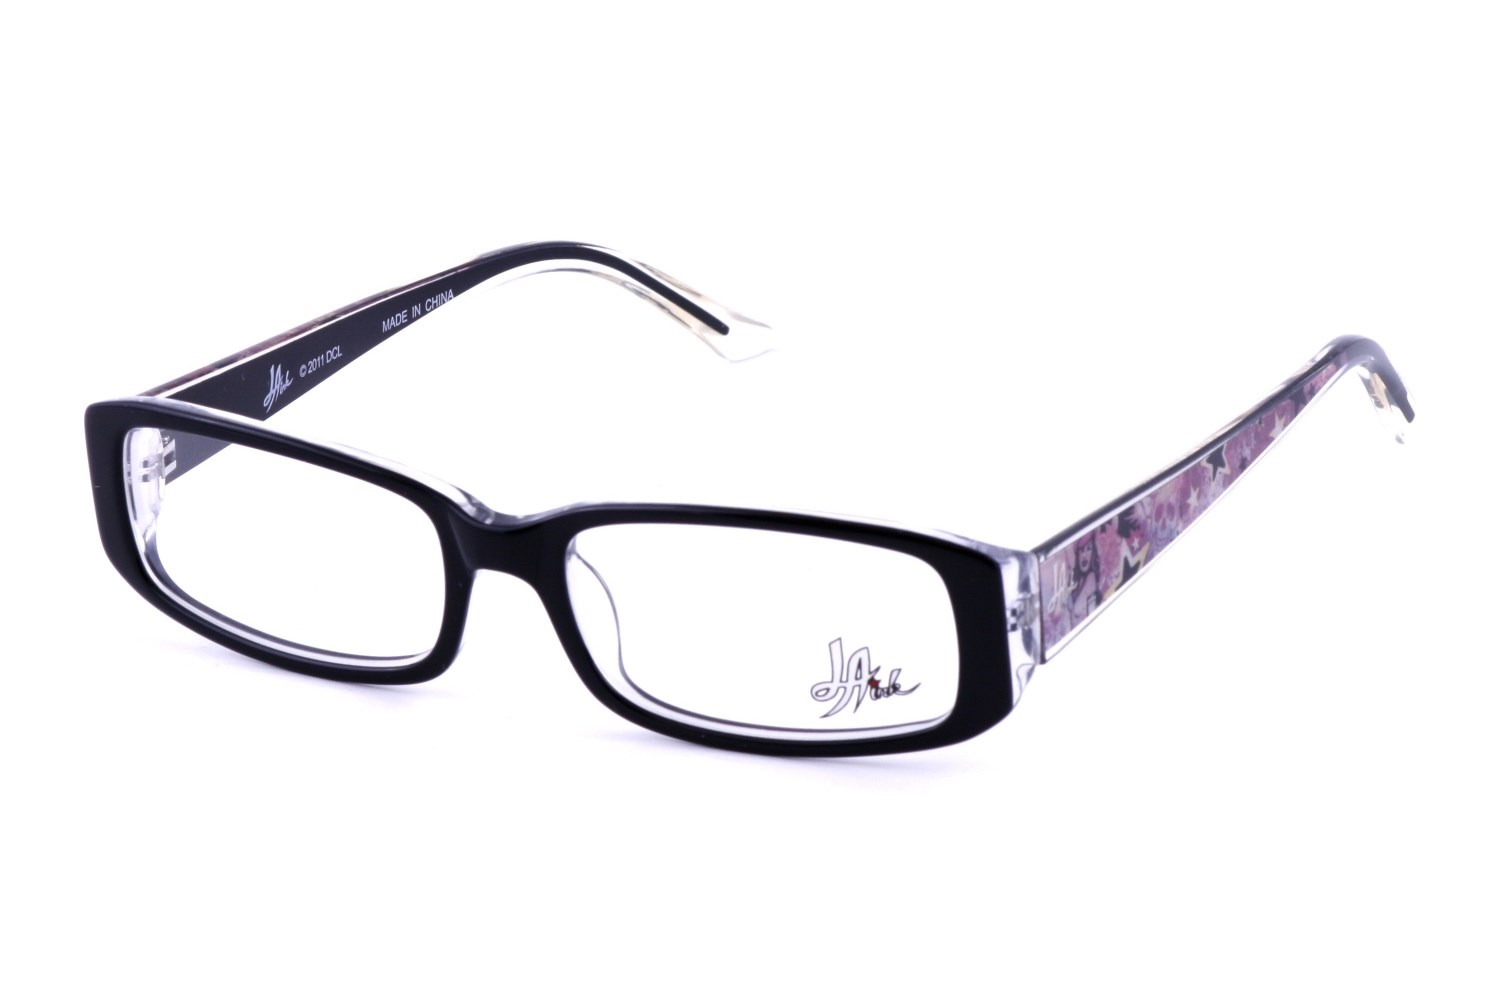 LA Ink 2 Prescription Eyeglasses Frames